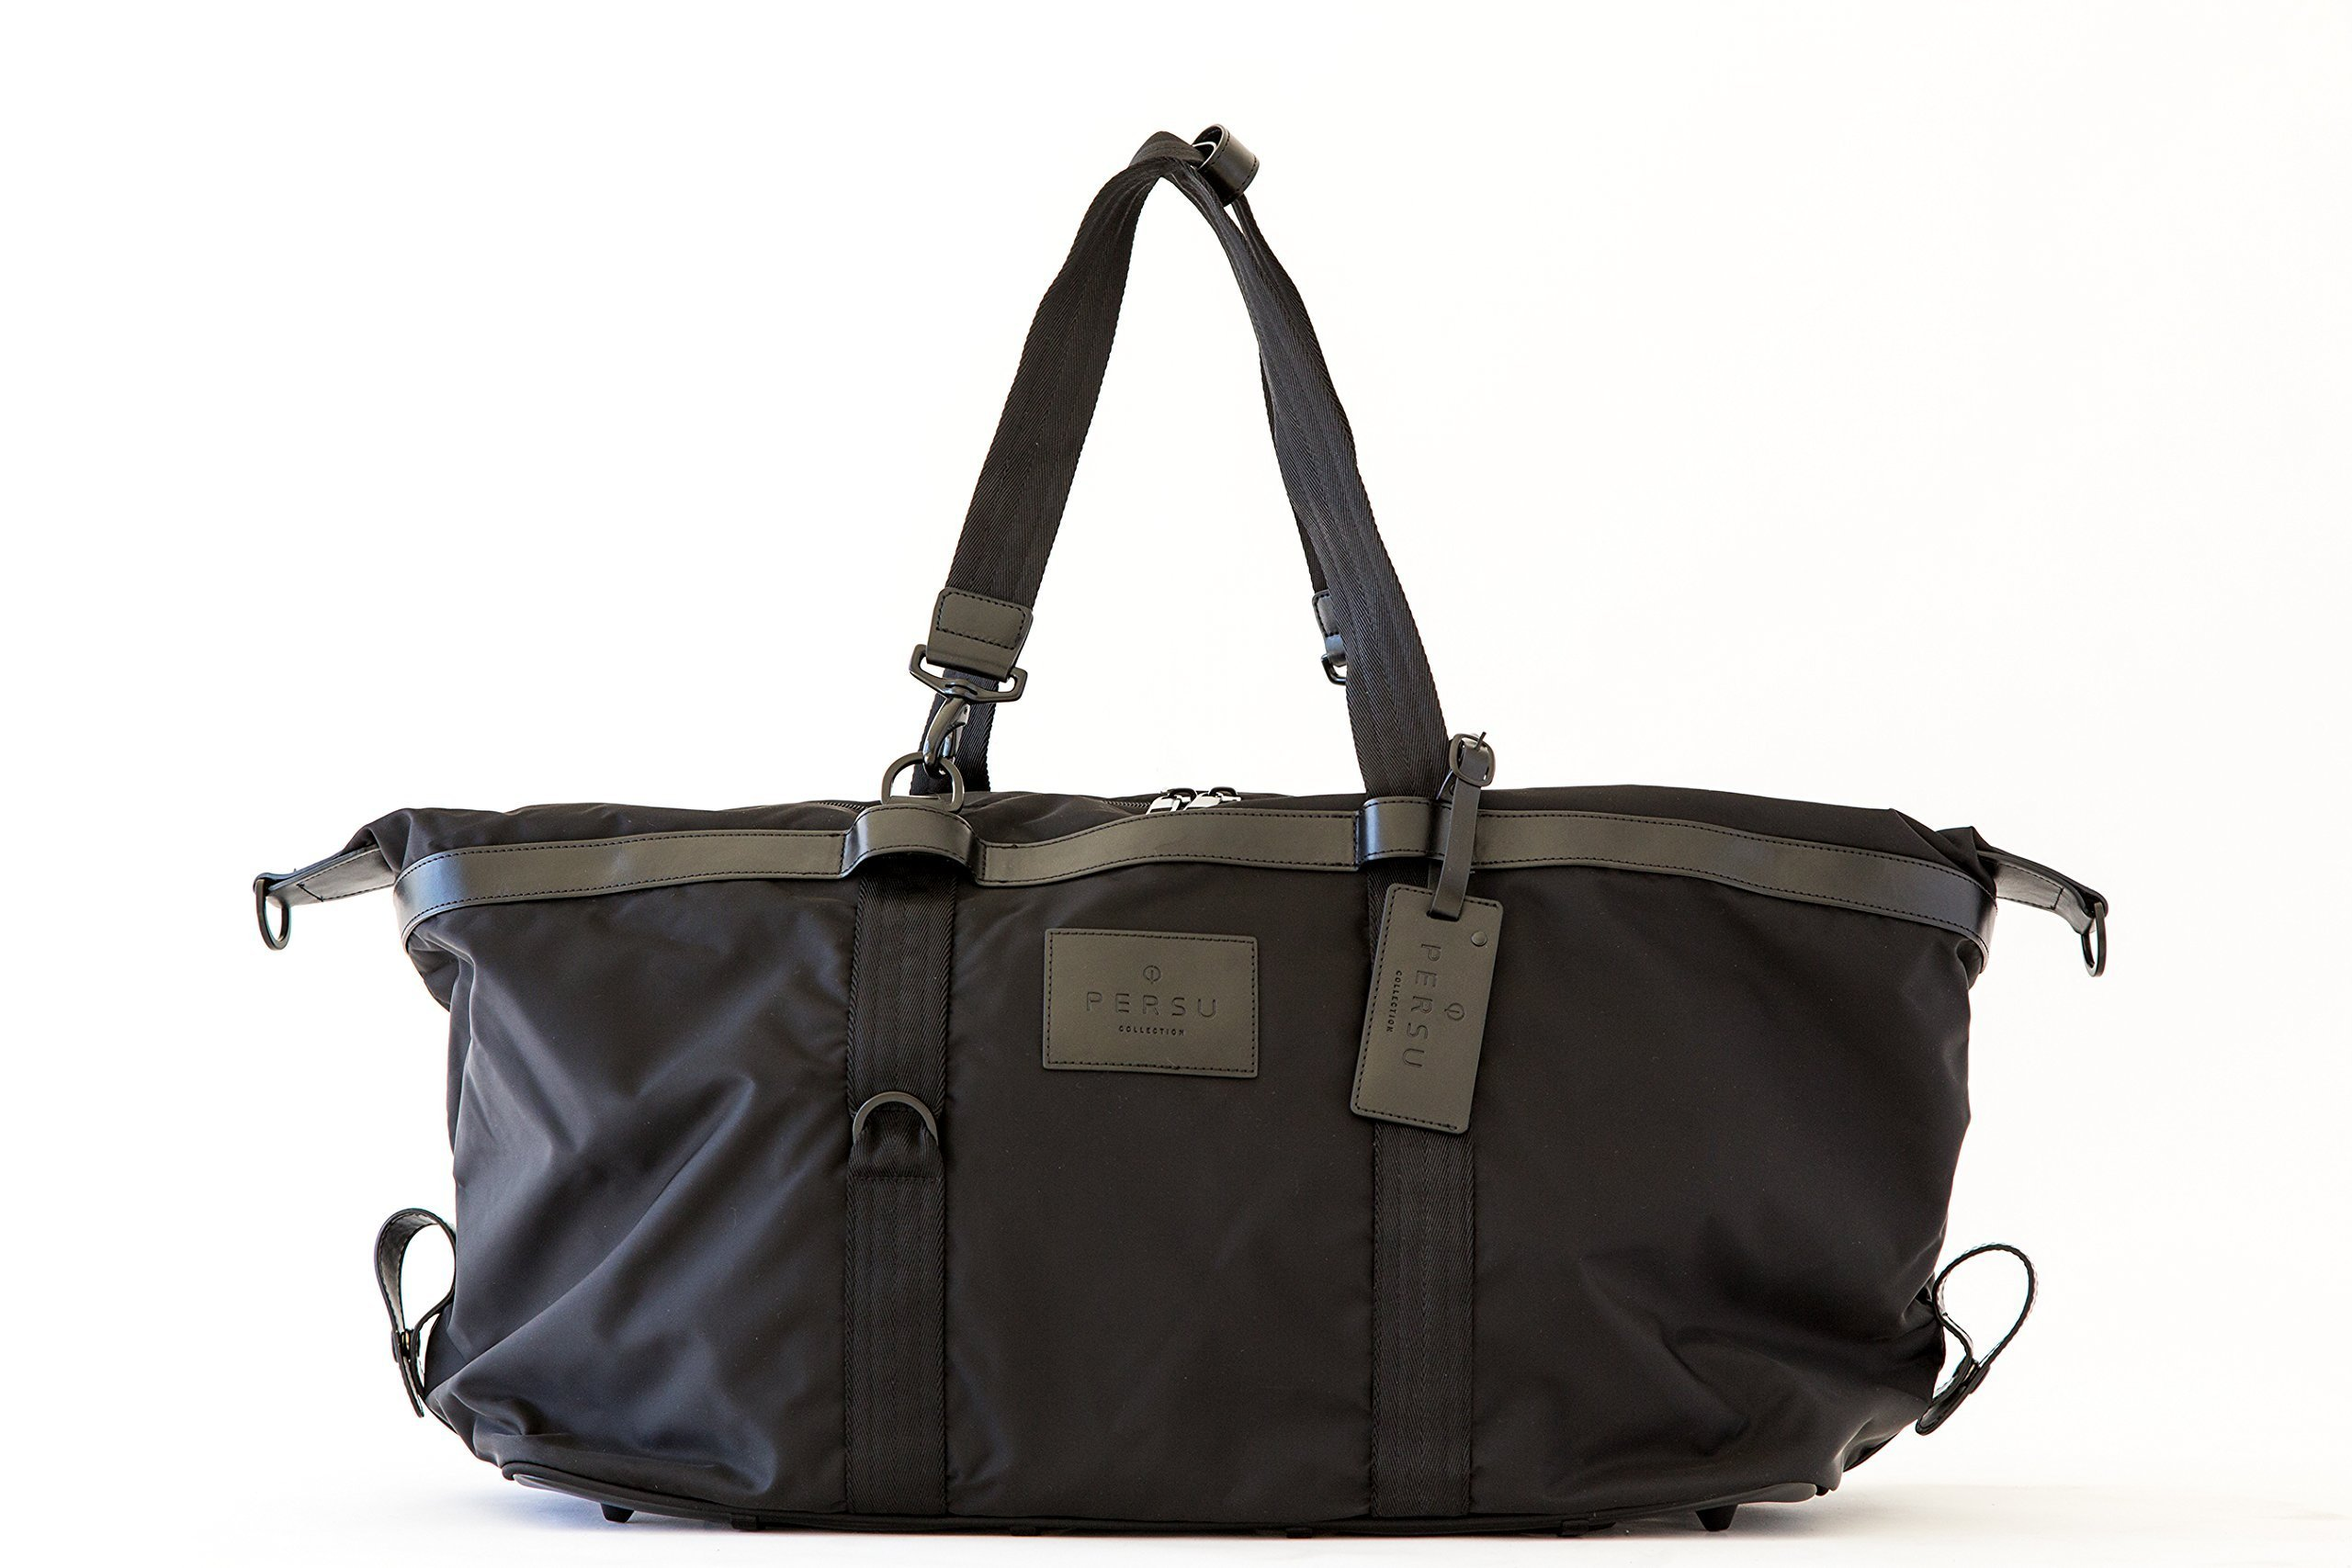 PERSU COLLECTION Men's/Unisex Gym and Weekender Bag - Black by PERSU COLLECTION